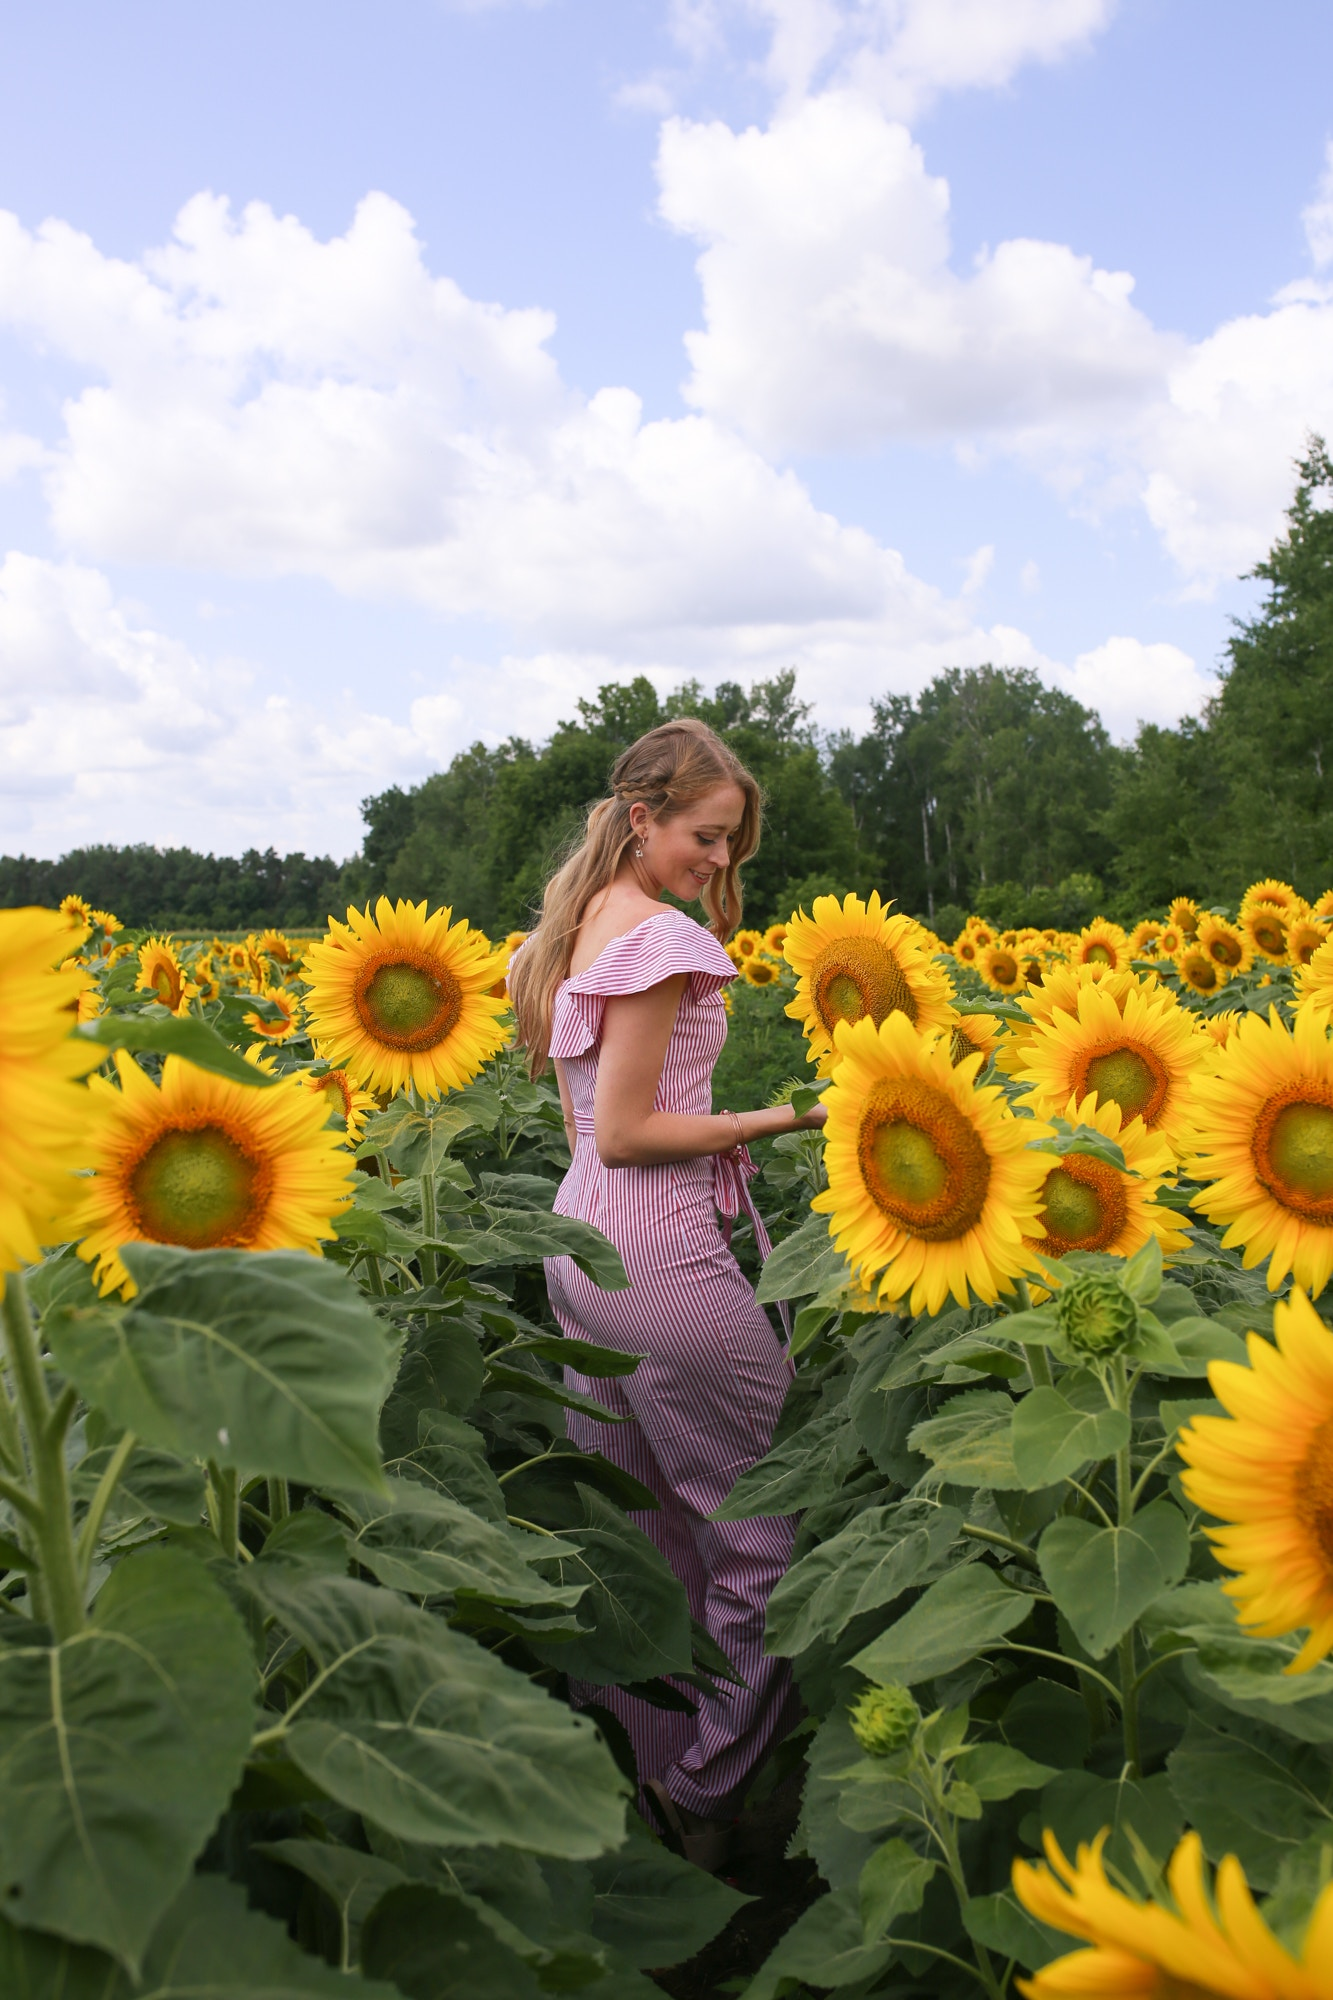 sunflower fields near toronto still open